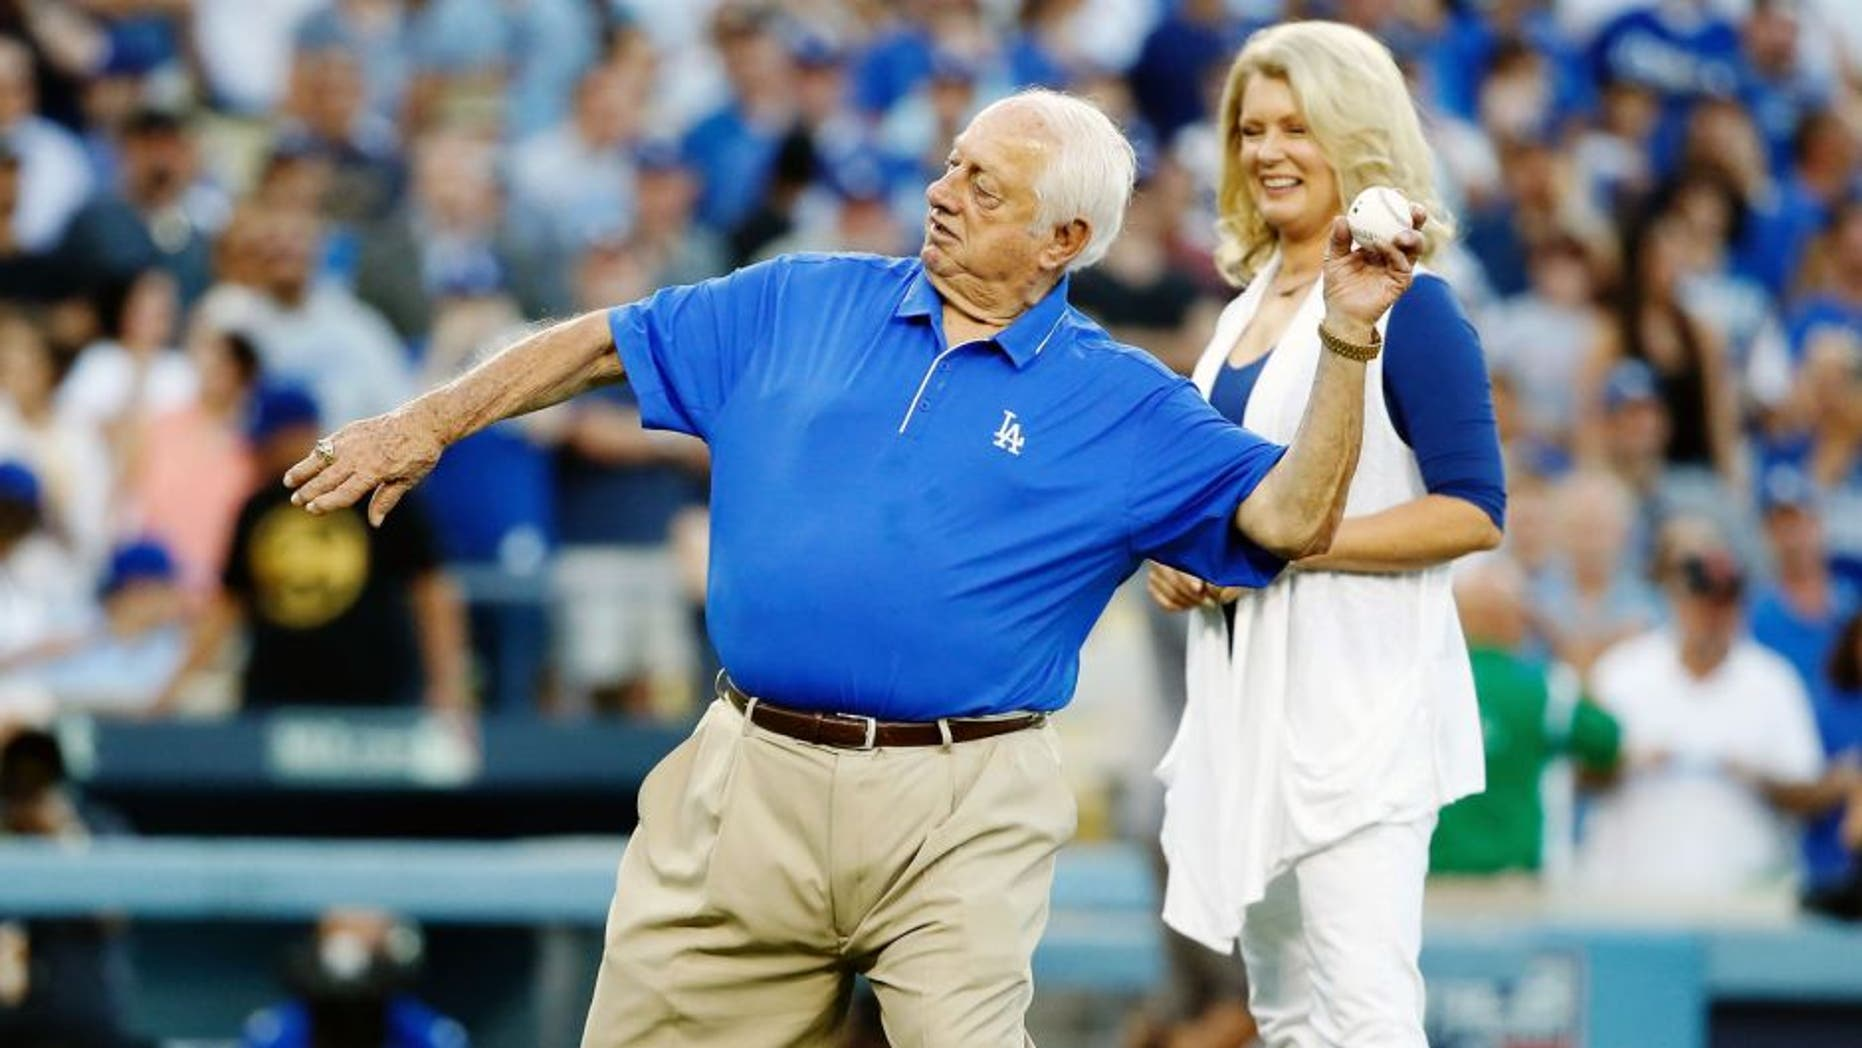 LOS ANGELES, CA - OCTOBER 10: Los Angeles Dodgers legend Tommy Lasorda throws out the ceremonial first pitch before the Dodgers take on the New York Mets in game two of the National League Division Series at Dodger Stadium on October 10, 2015 in Los Angeles, California. (Photo by Sean M. Haffey/Getty Images)